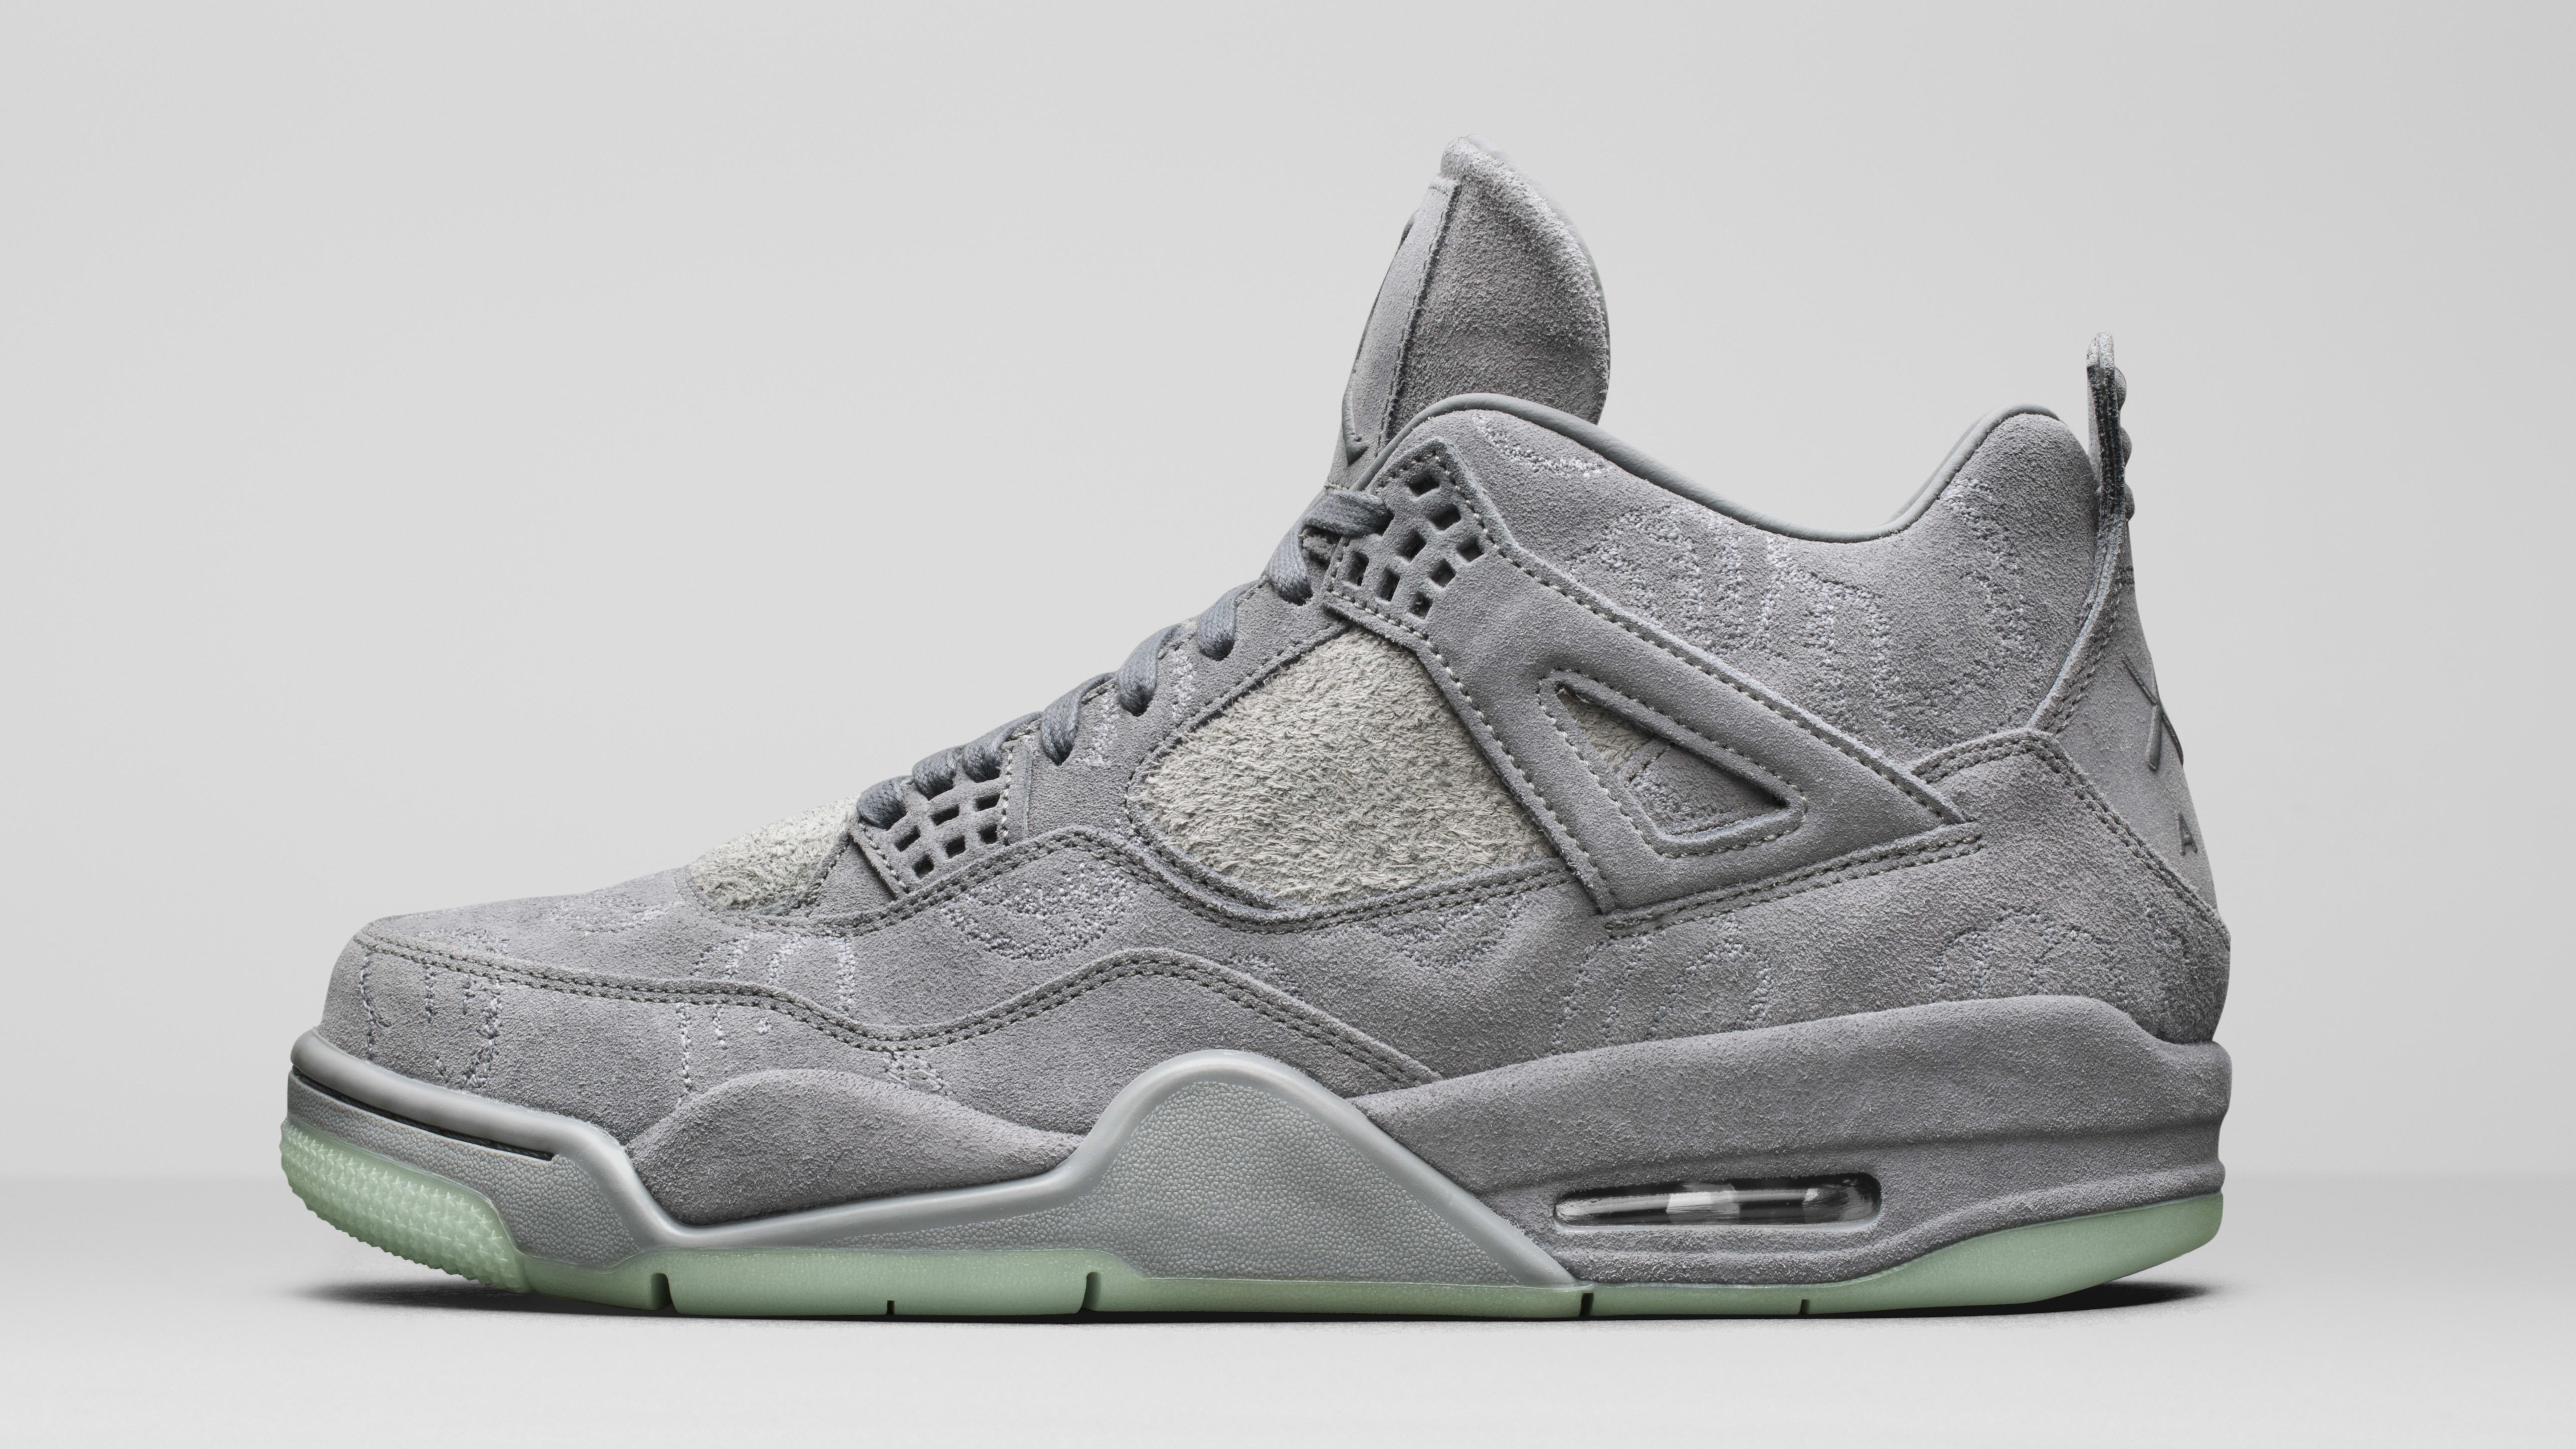 Buy Kaws Air Jordan Online Early Cart Sole Collector - Pages invoice templates free kaws online store